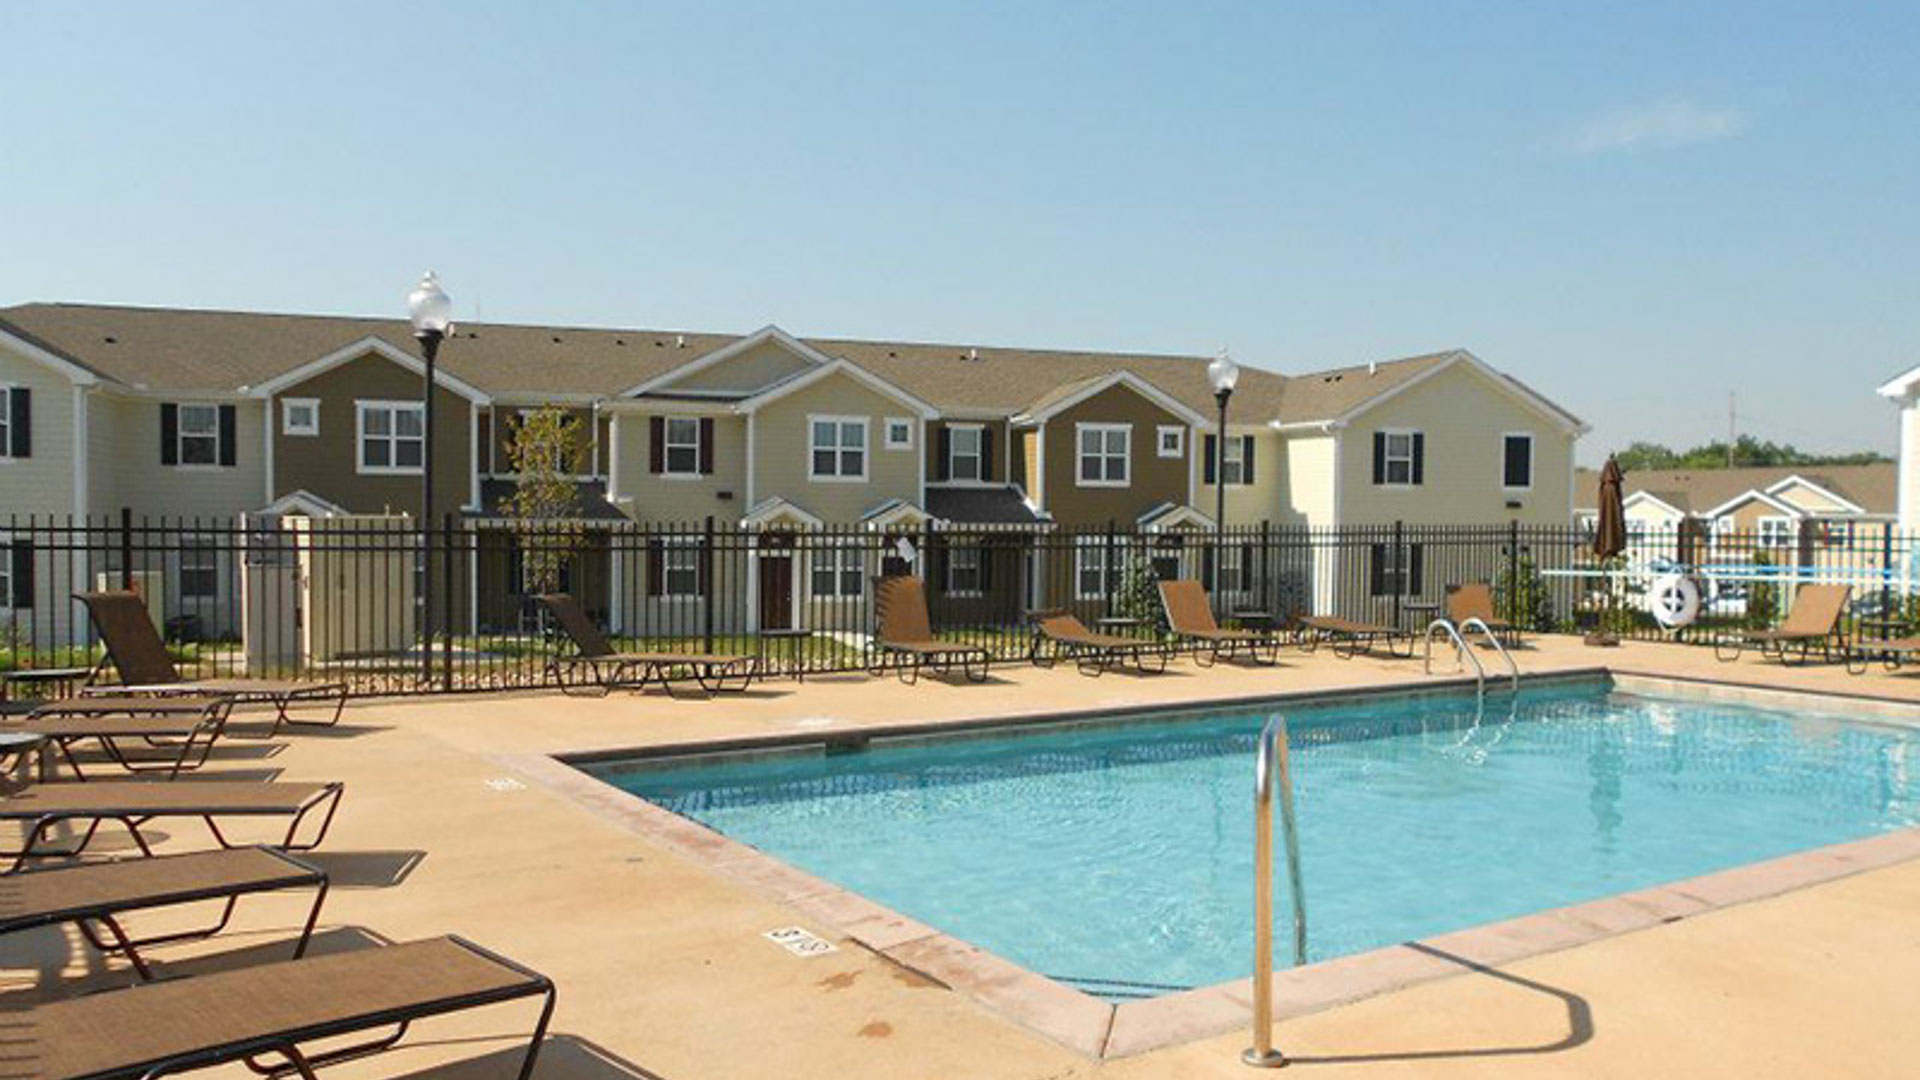 Pool at Springs at Bettendorf Apartments in Quad Cities